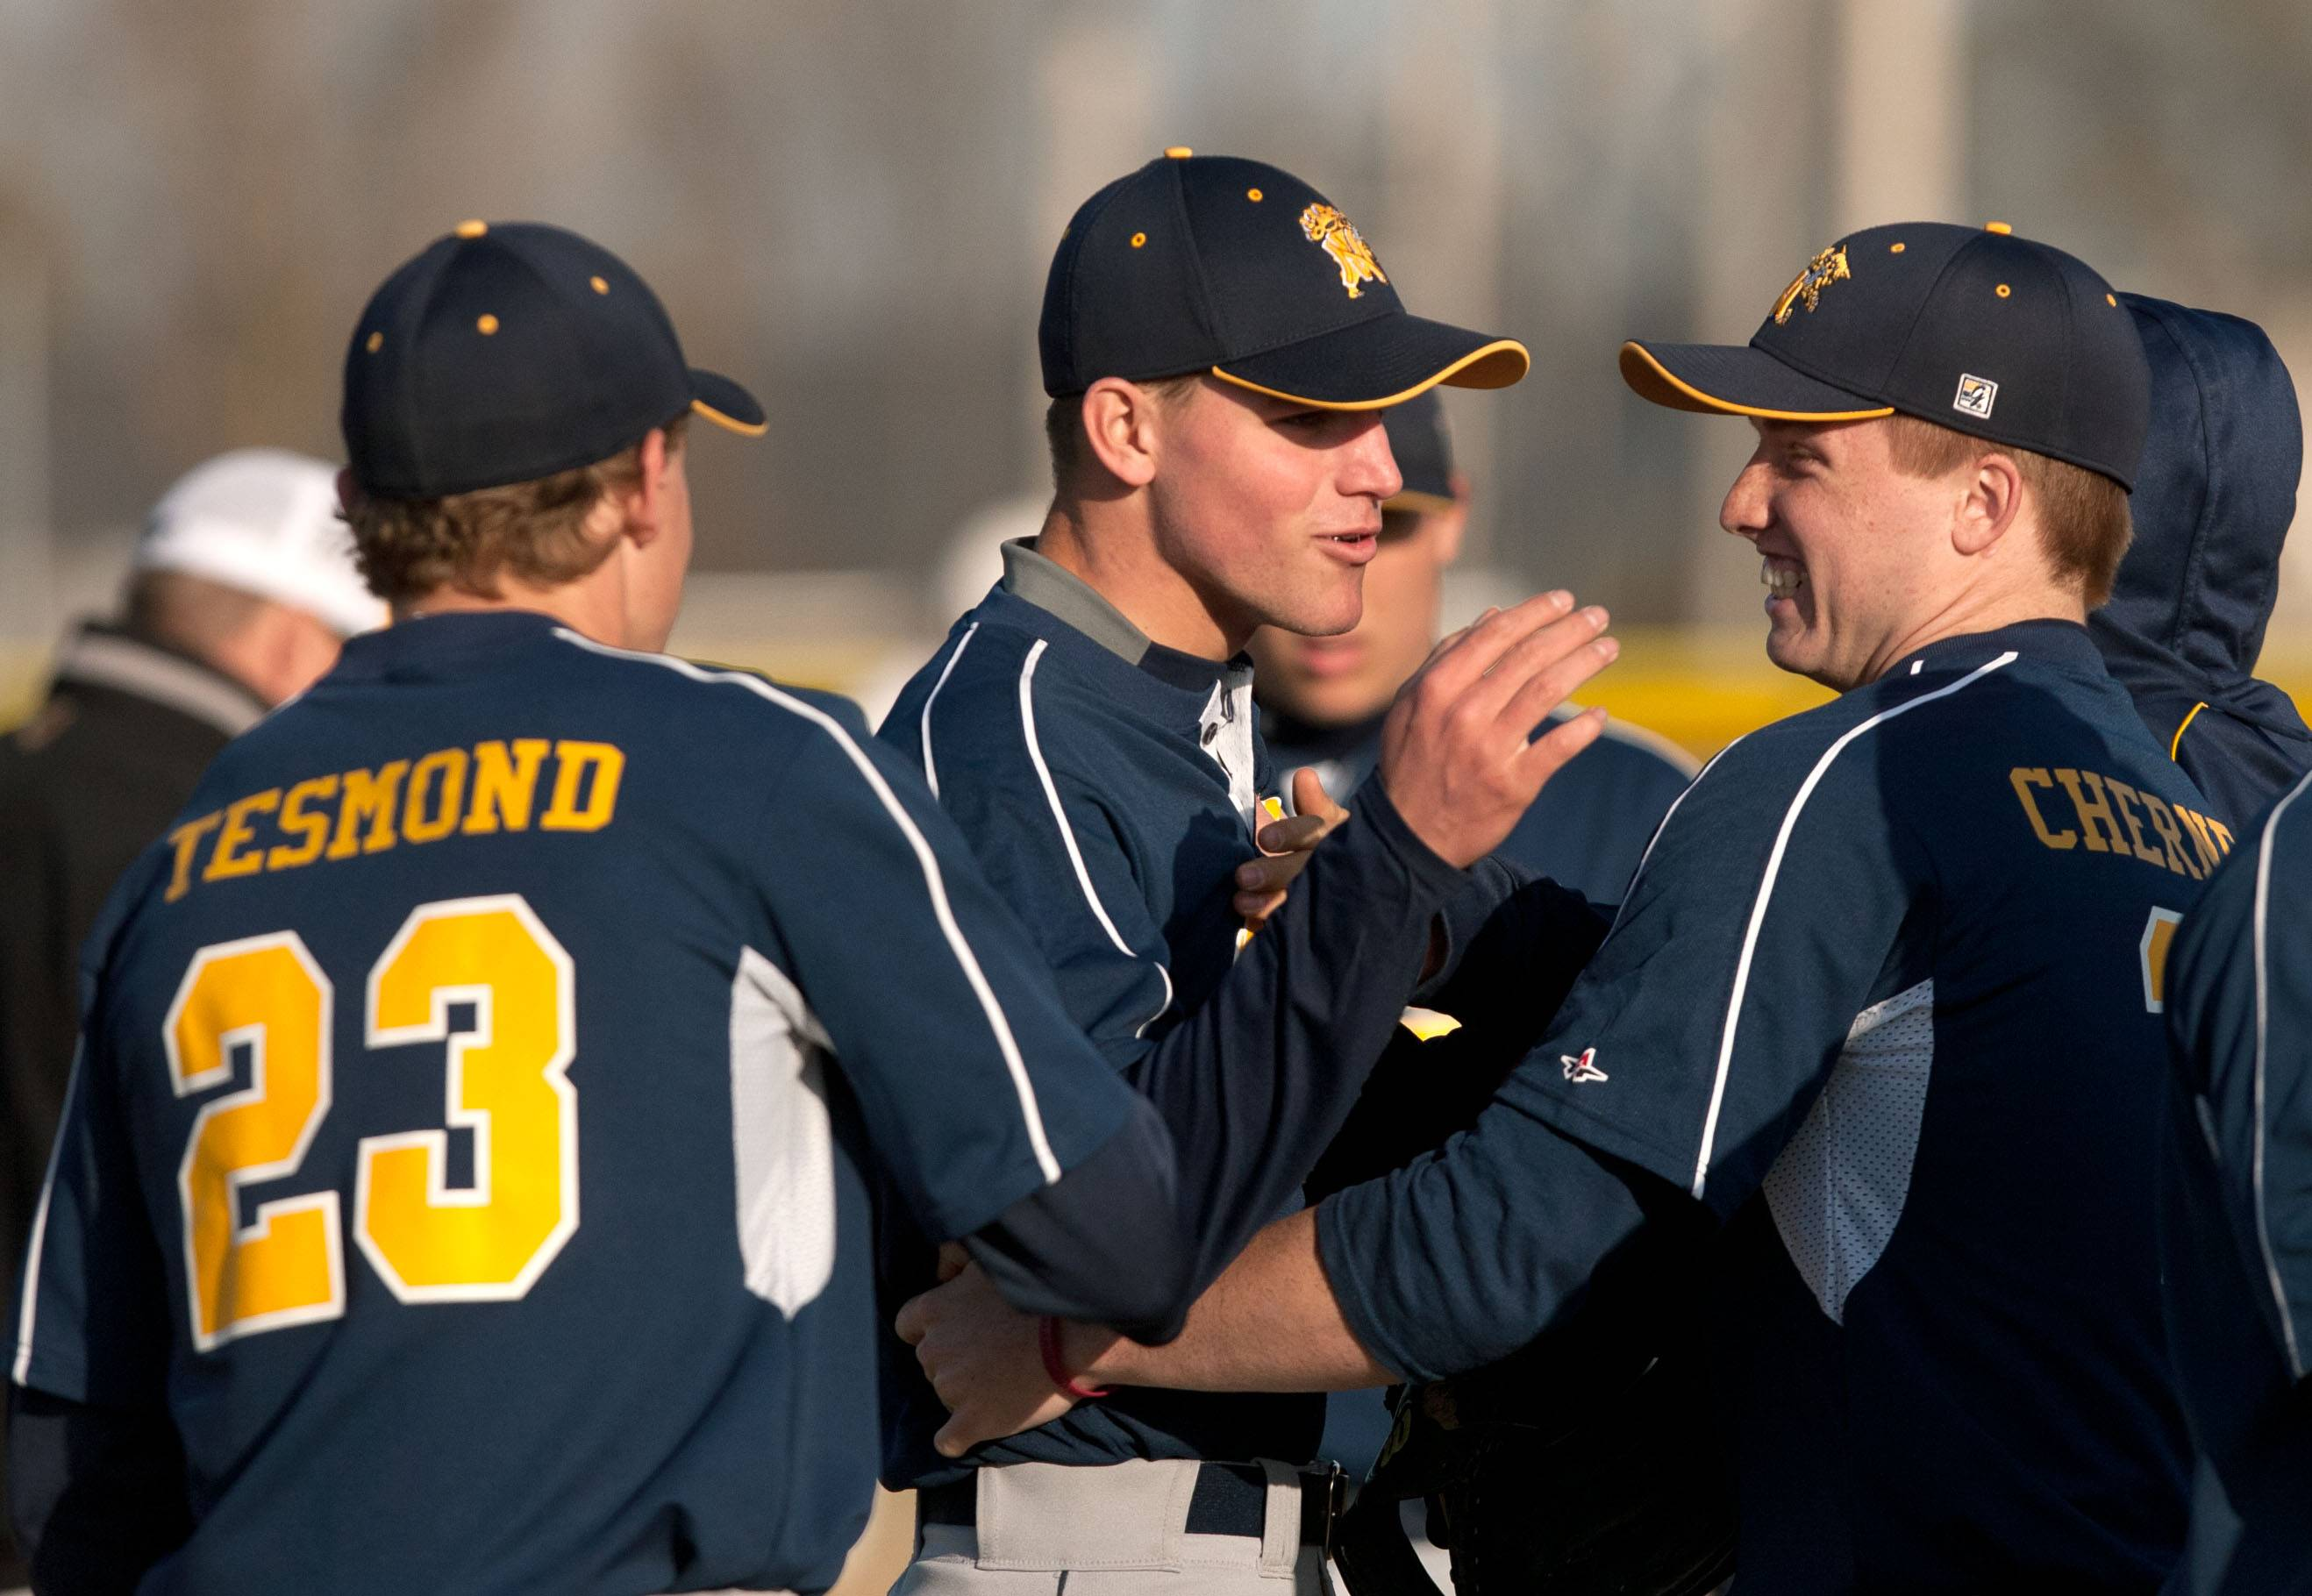 Daniel White/dwhite@dailyherald.comNeuqua Valley pitcher Andy Sommers, center, celebrates a complete game 3-1 win over Metea Valley during boys baseball action in Aurora. Tyler Tesmond, left, and Evan Cherney, right, congratulate Sommers.